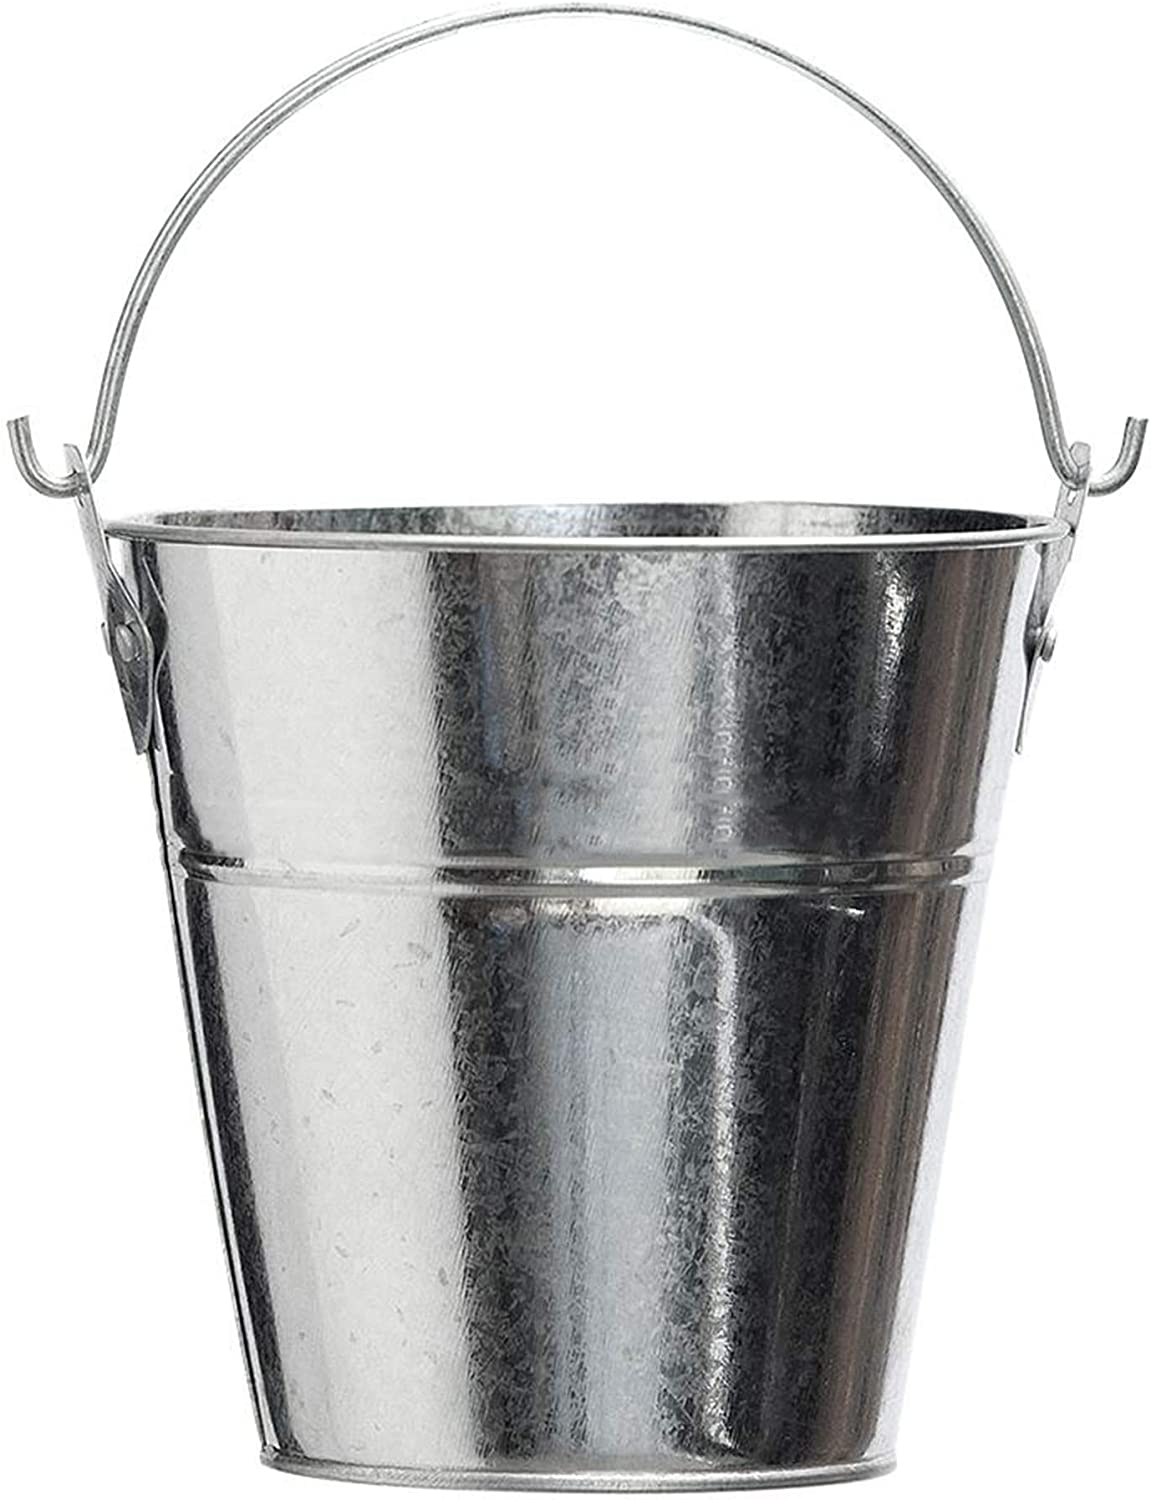 BBQ Butler Steel Grease Bucket for Grill/Smoker - Galvanized Drip Buckets - Small Bucket- Pellet Grill Accessories - Traeger, Pit Boss Grills - Metal Pail with Handle - Dripping Pail - 2 Quart Size